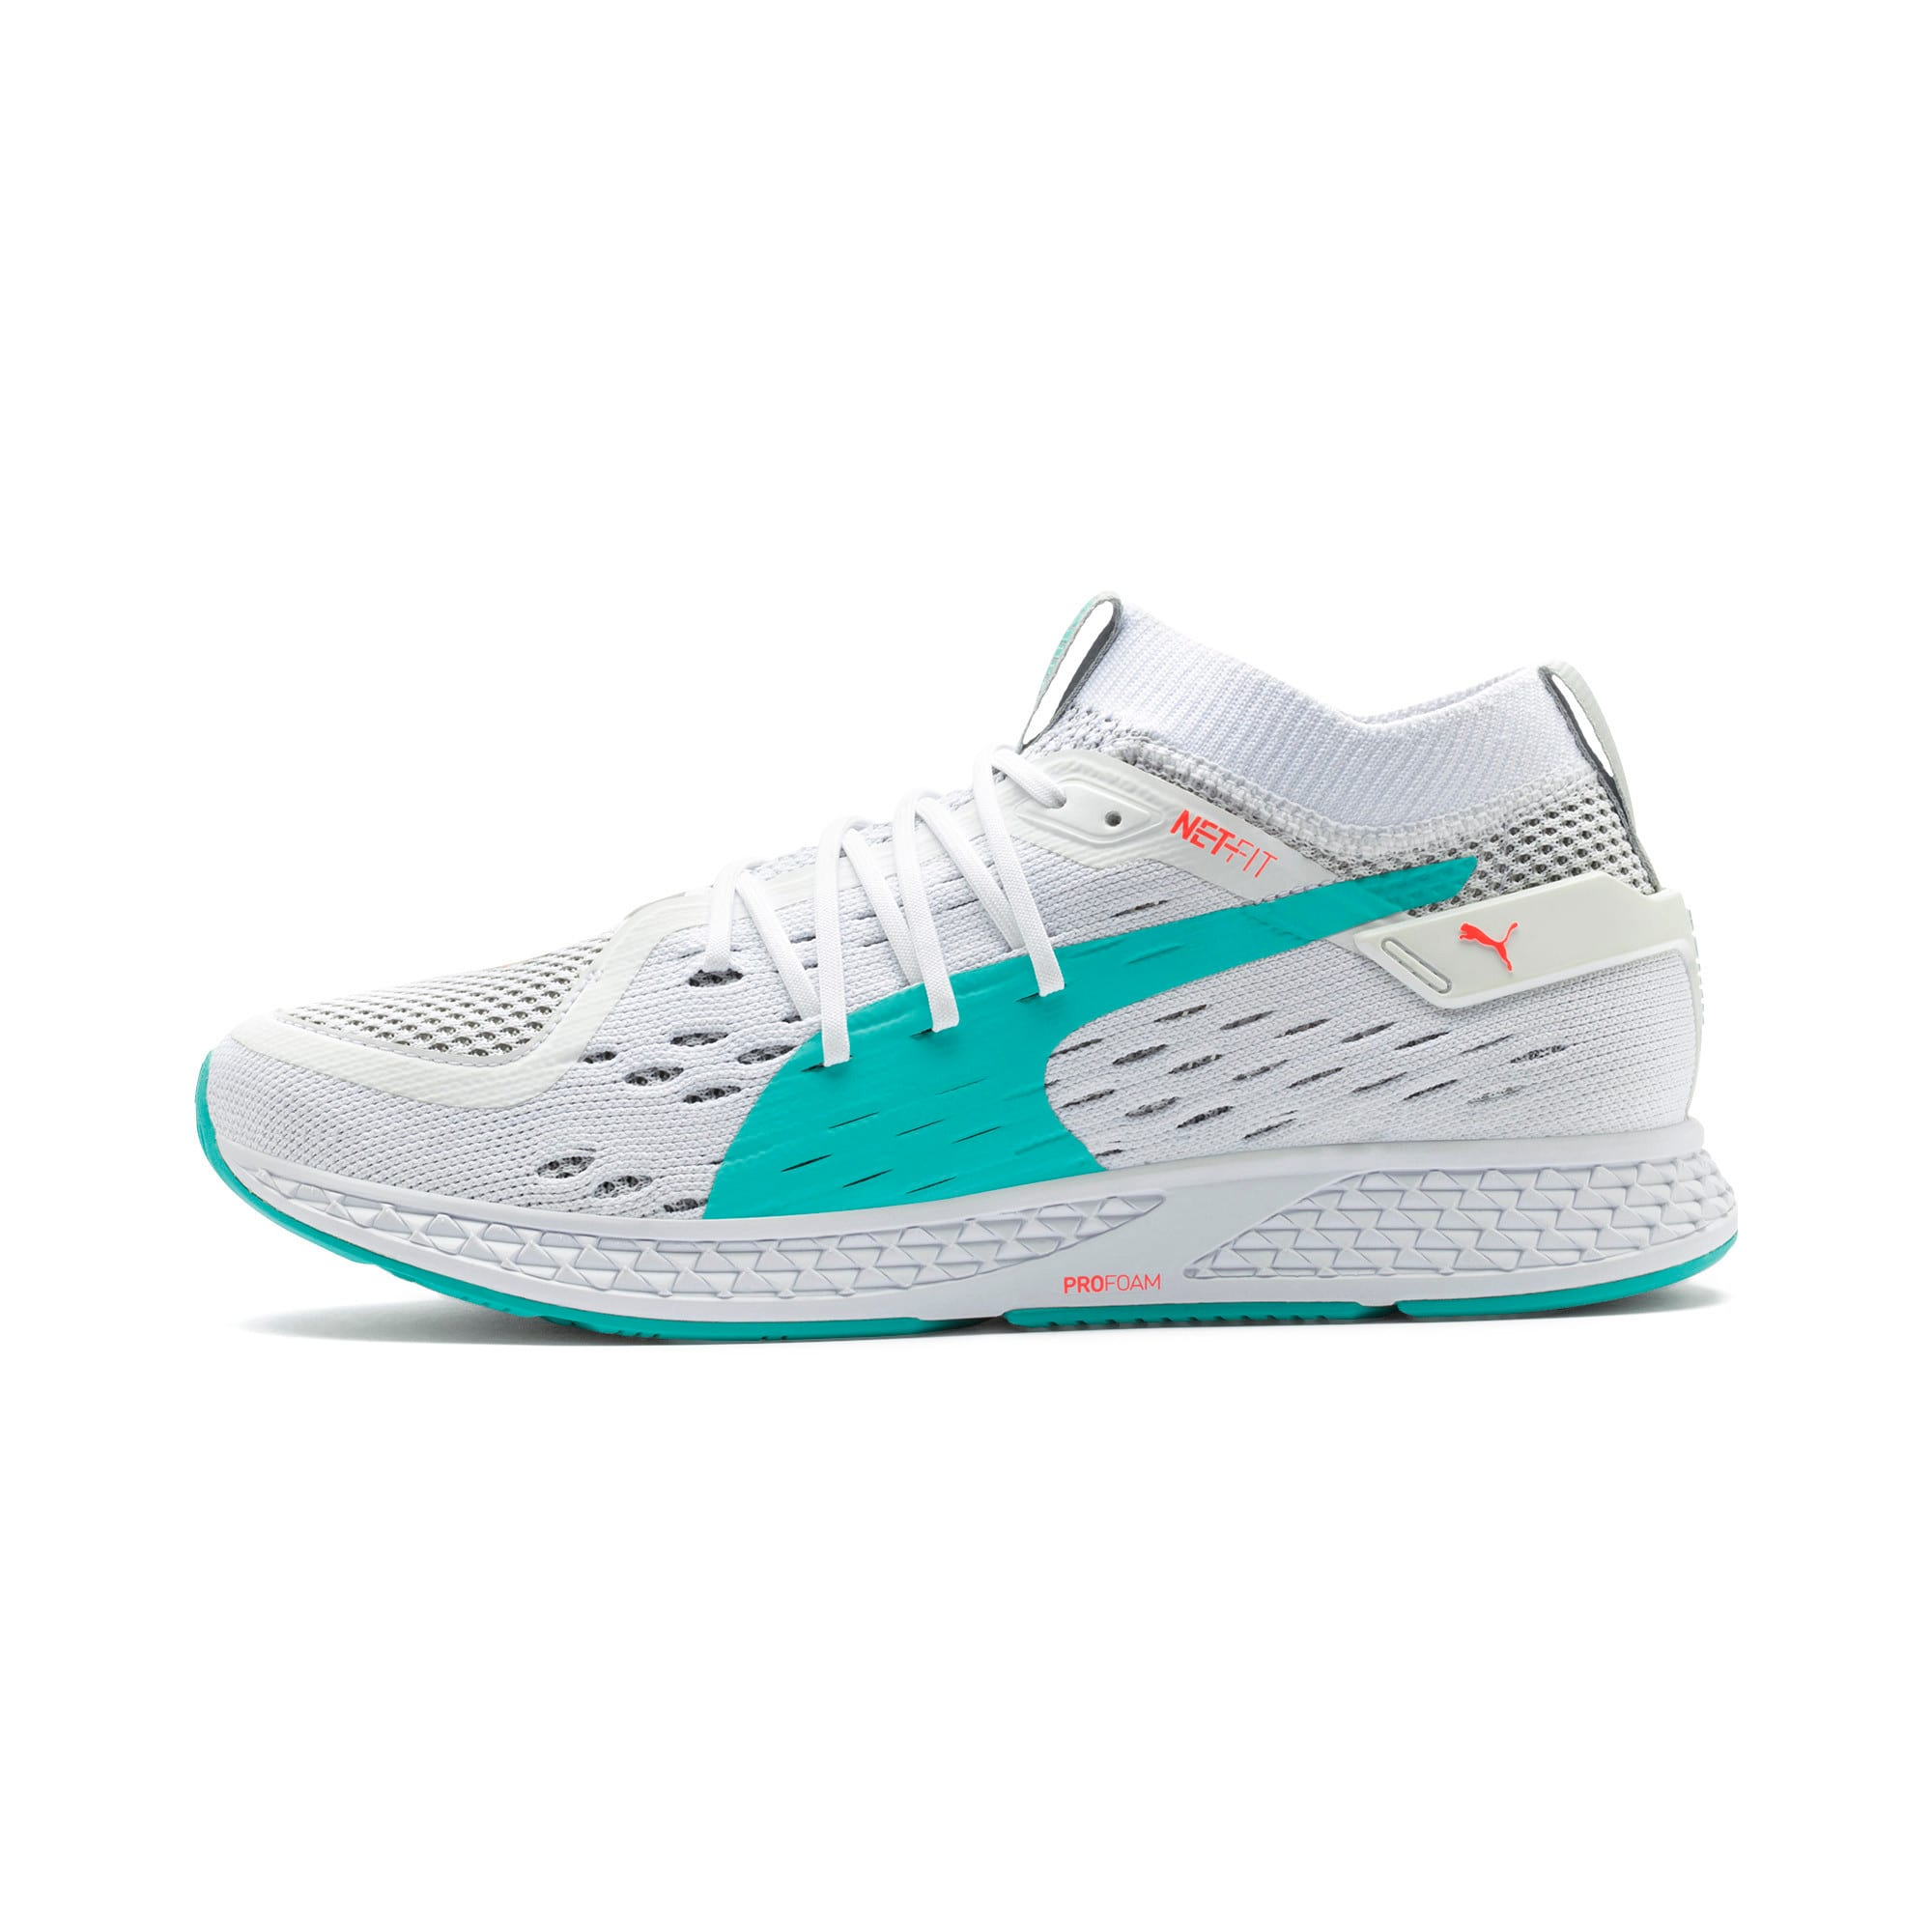 Thumbnail 1 of SPEED 500 Men's Running Shoes, White-Turquoise-Nrgy Red, medium